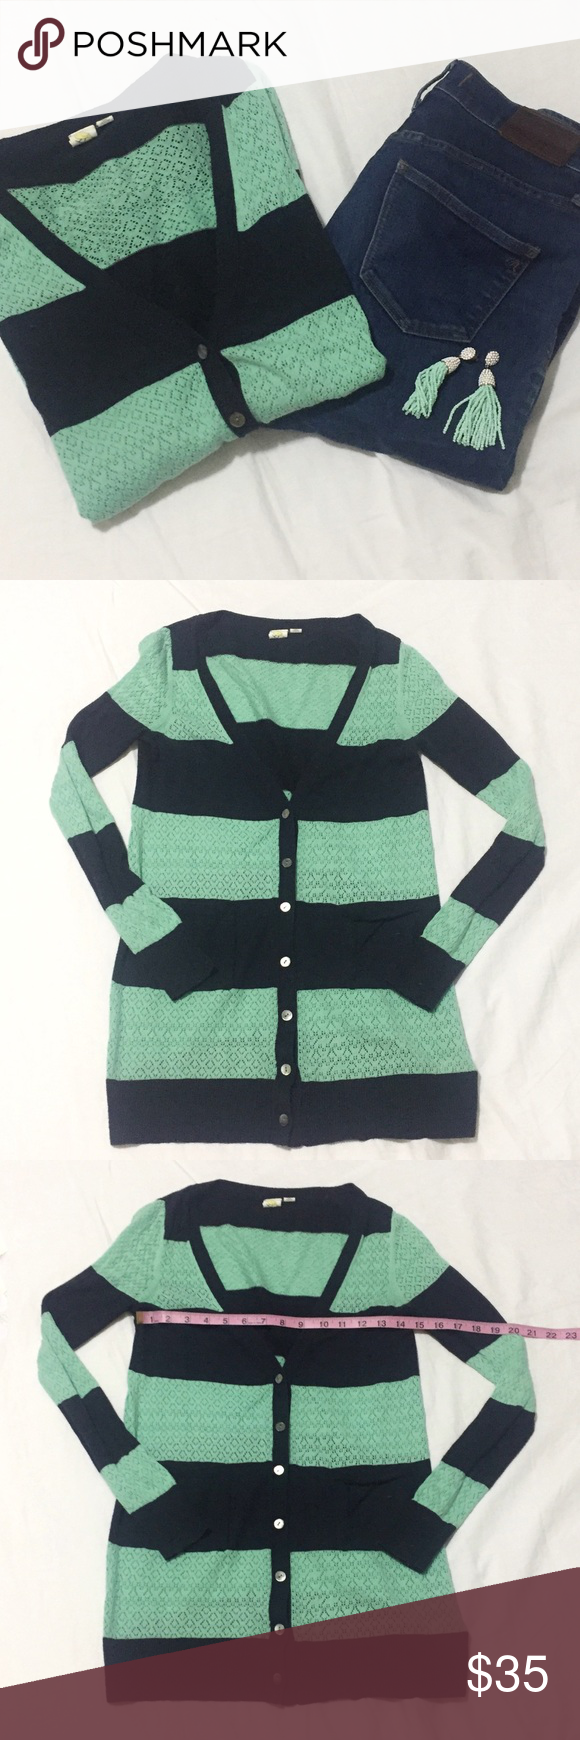 Anthropologie | Mint/Blue Striped Cardigan | XS Anthropologie Yellow Bird | Mint/Blue Striped Cardigan | Size: XS | Great Condition | No Wear or Damage | Pet/Smoke Free Home | True to Size | Cotton Blend | See Photos For Measurements Anthropologie Sweaters Cardigans